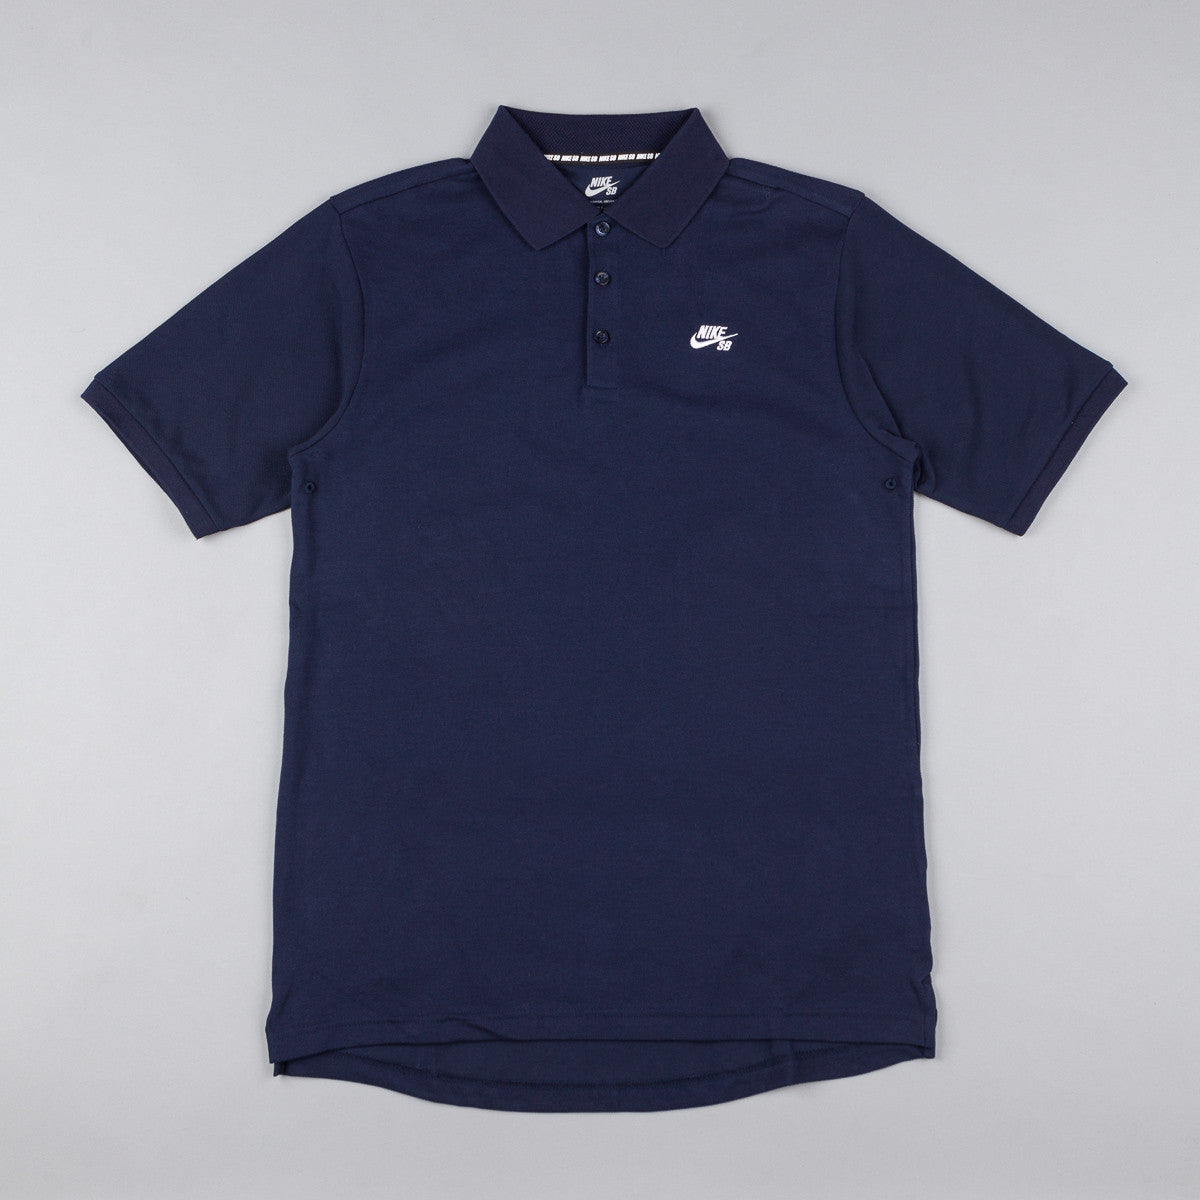 Nike SB Dri-Fit Pique T-Shirt - Obsidian / White